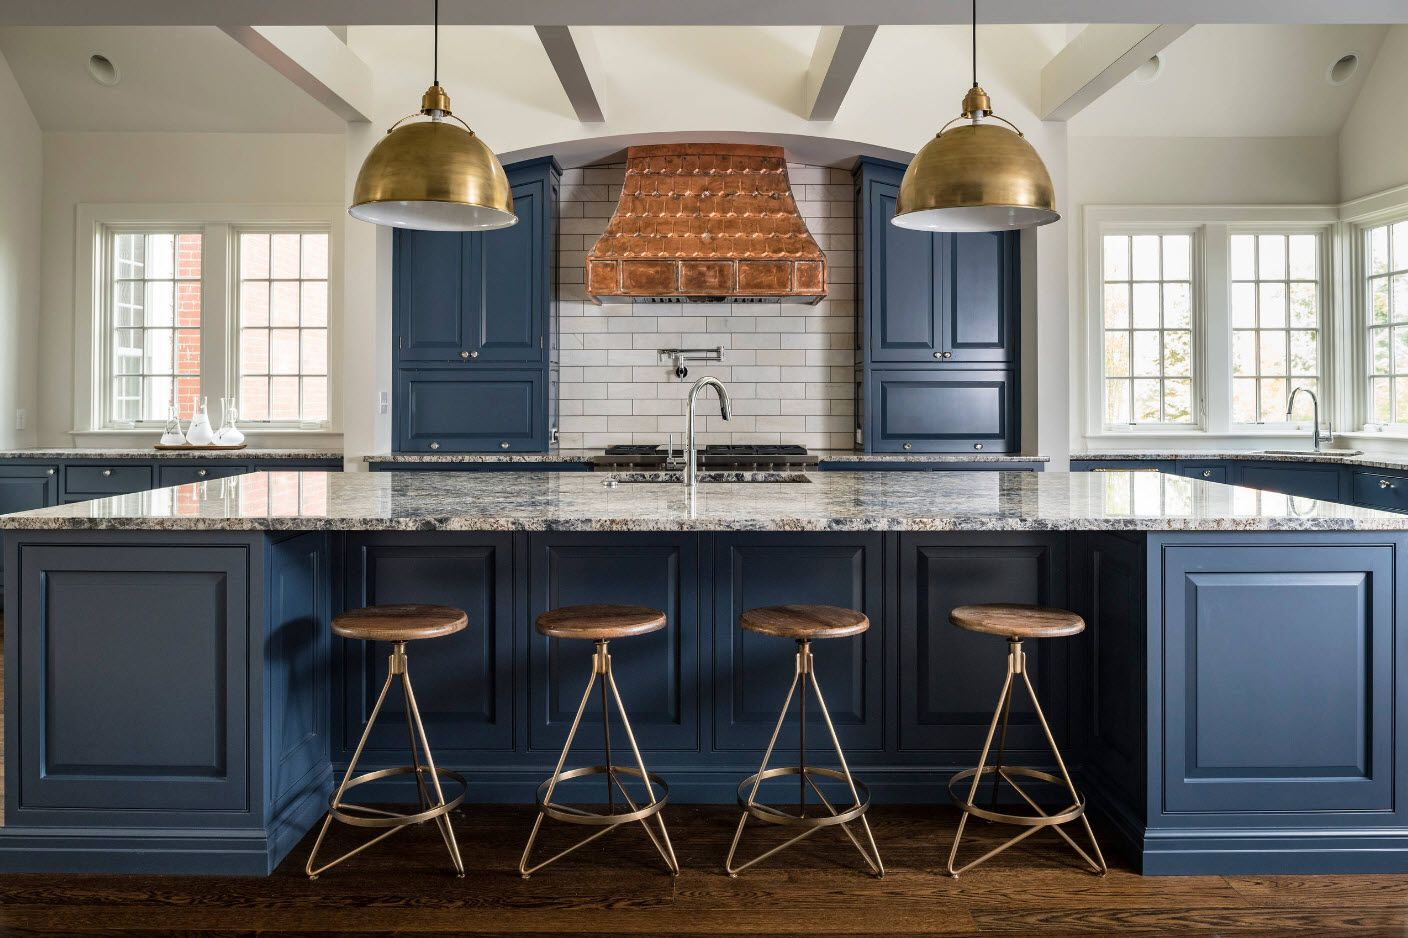 Classic dining room with set of wooden stools and dark blue finish of furniture facades